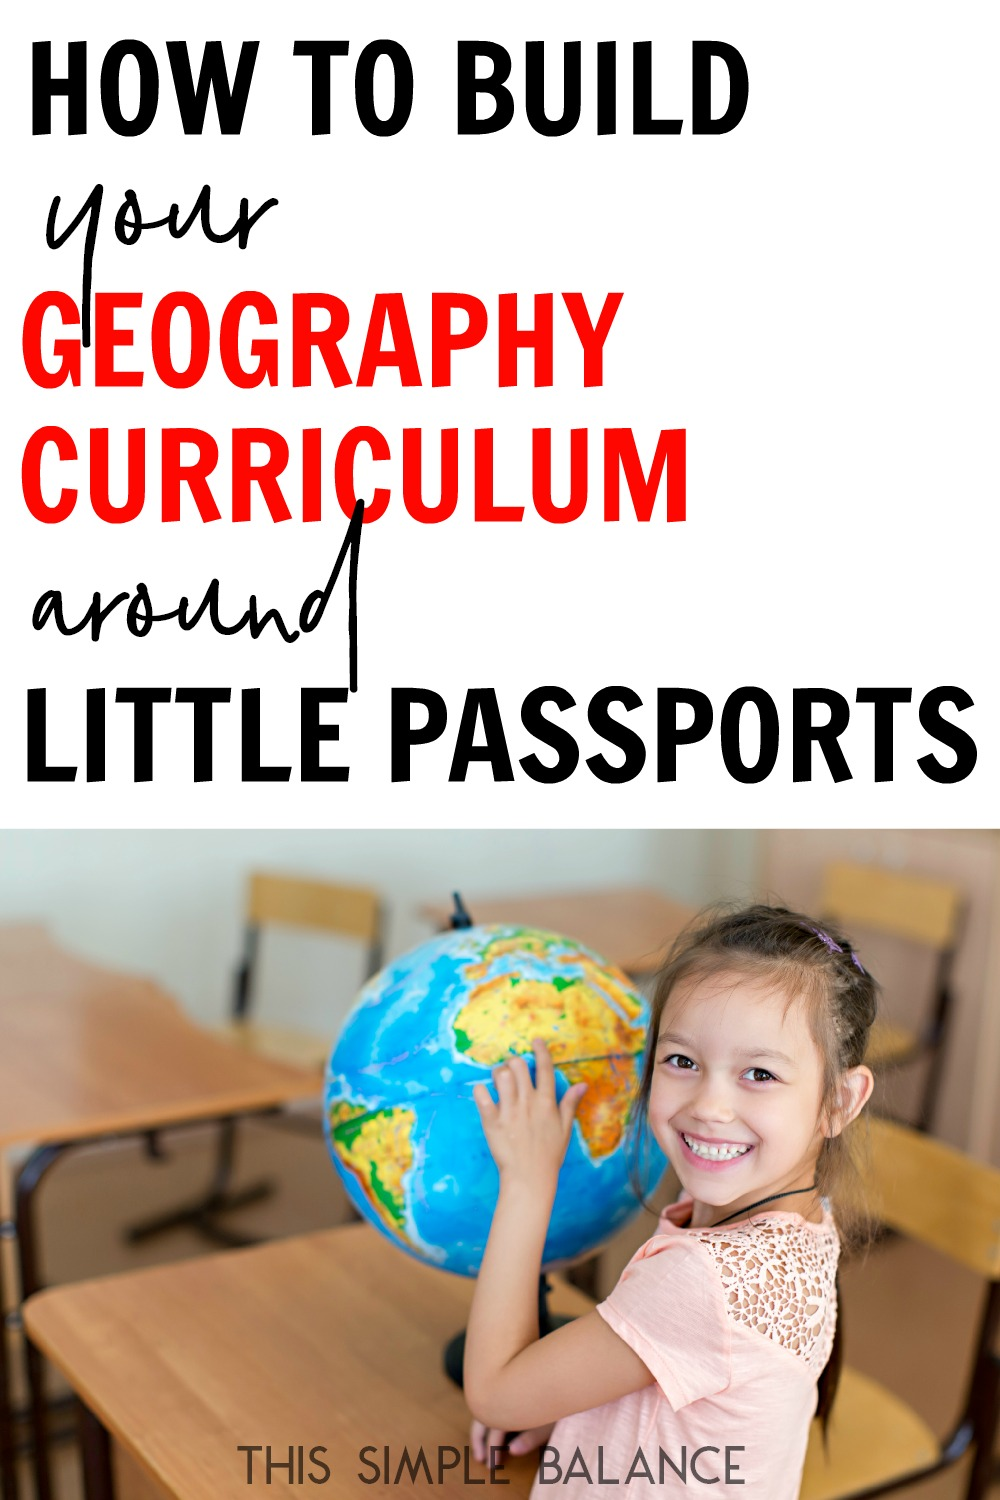 Easily Homeschool geography using Little Passports combined with a genius course created by the author of Intentional Homeschooling #relaxedhomeschooling #simplehomeschool